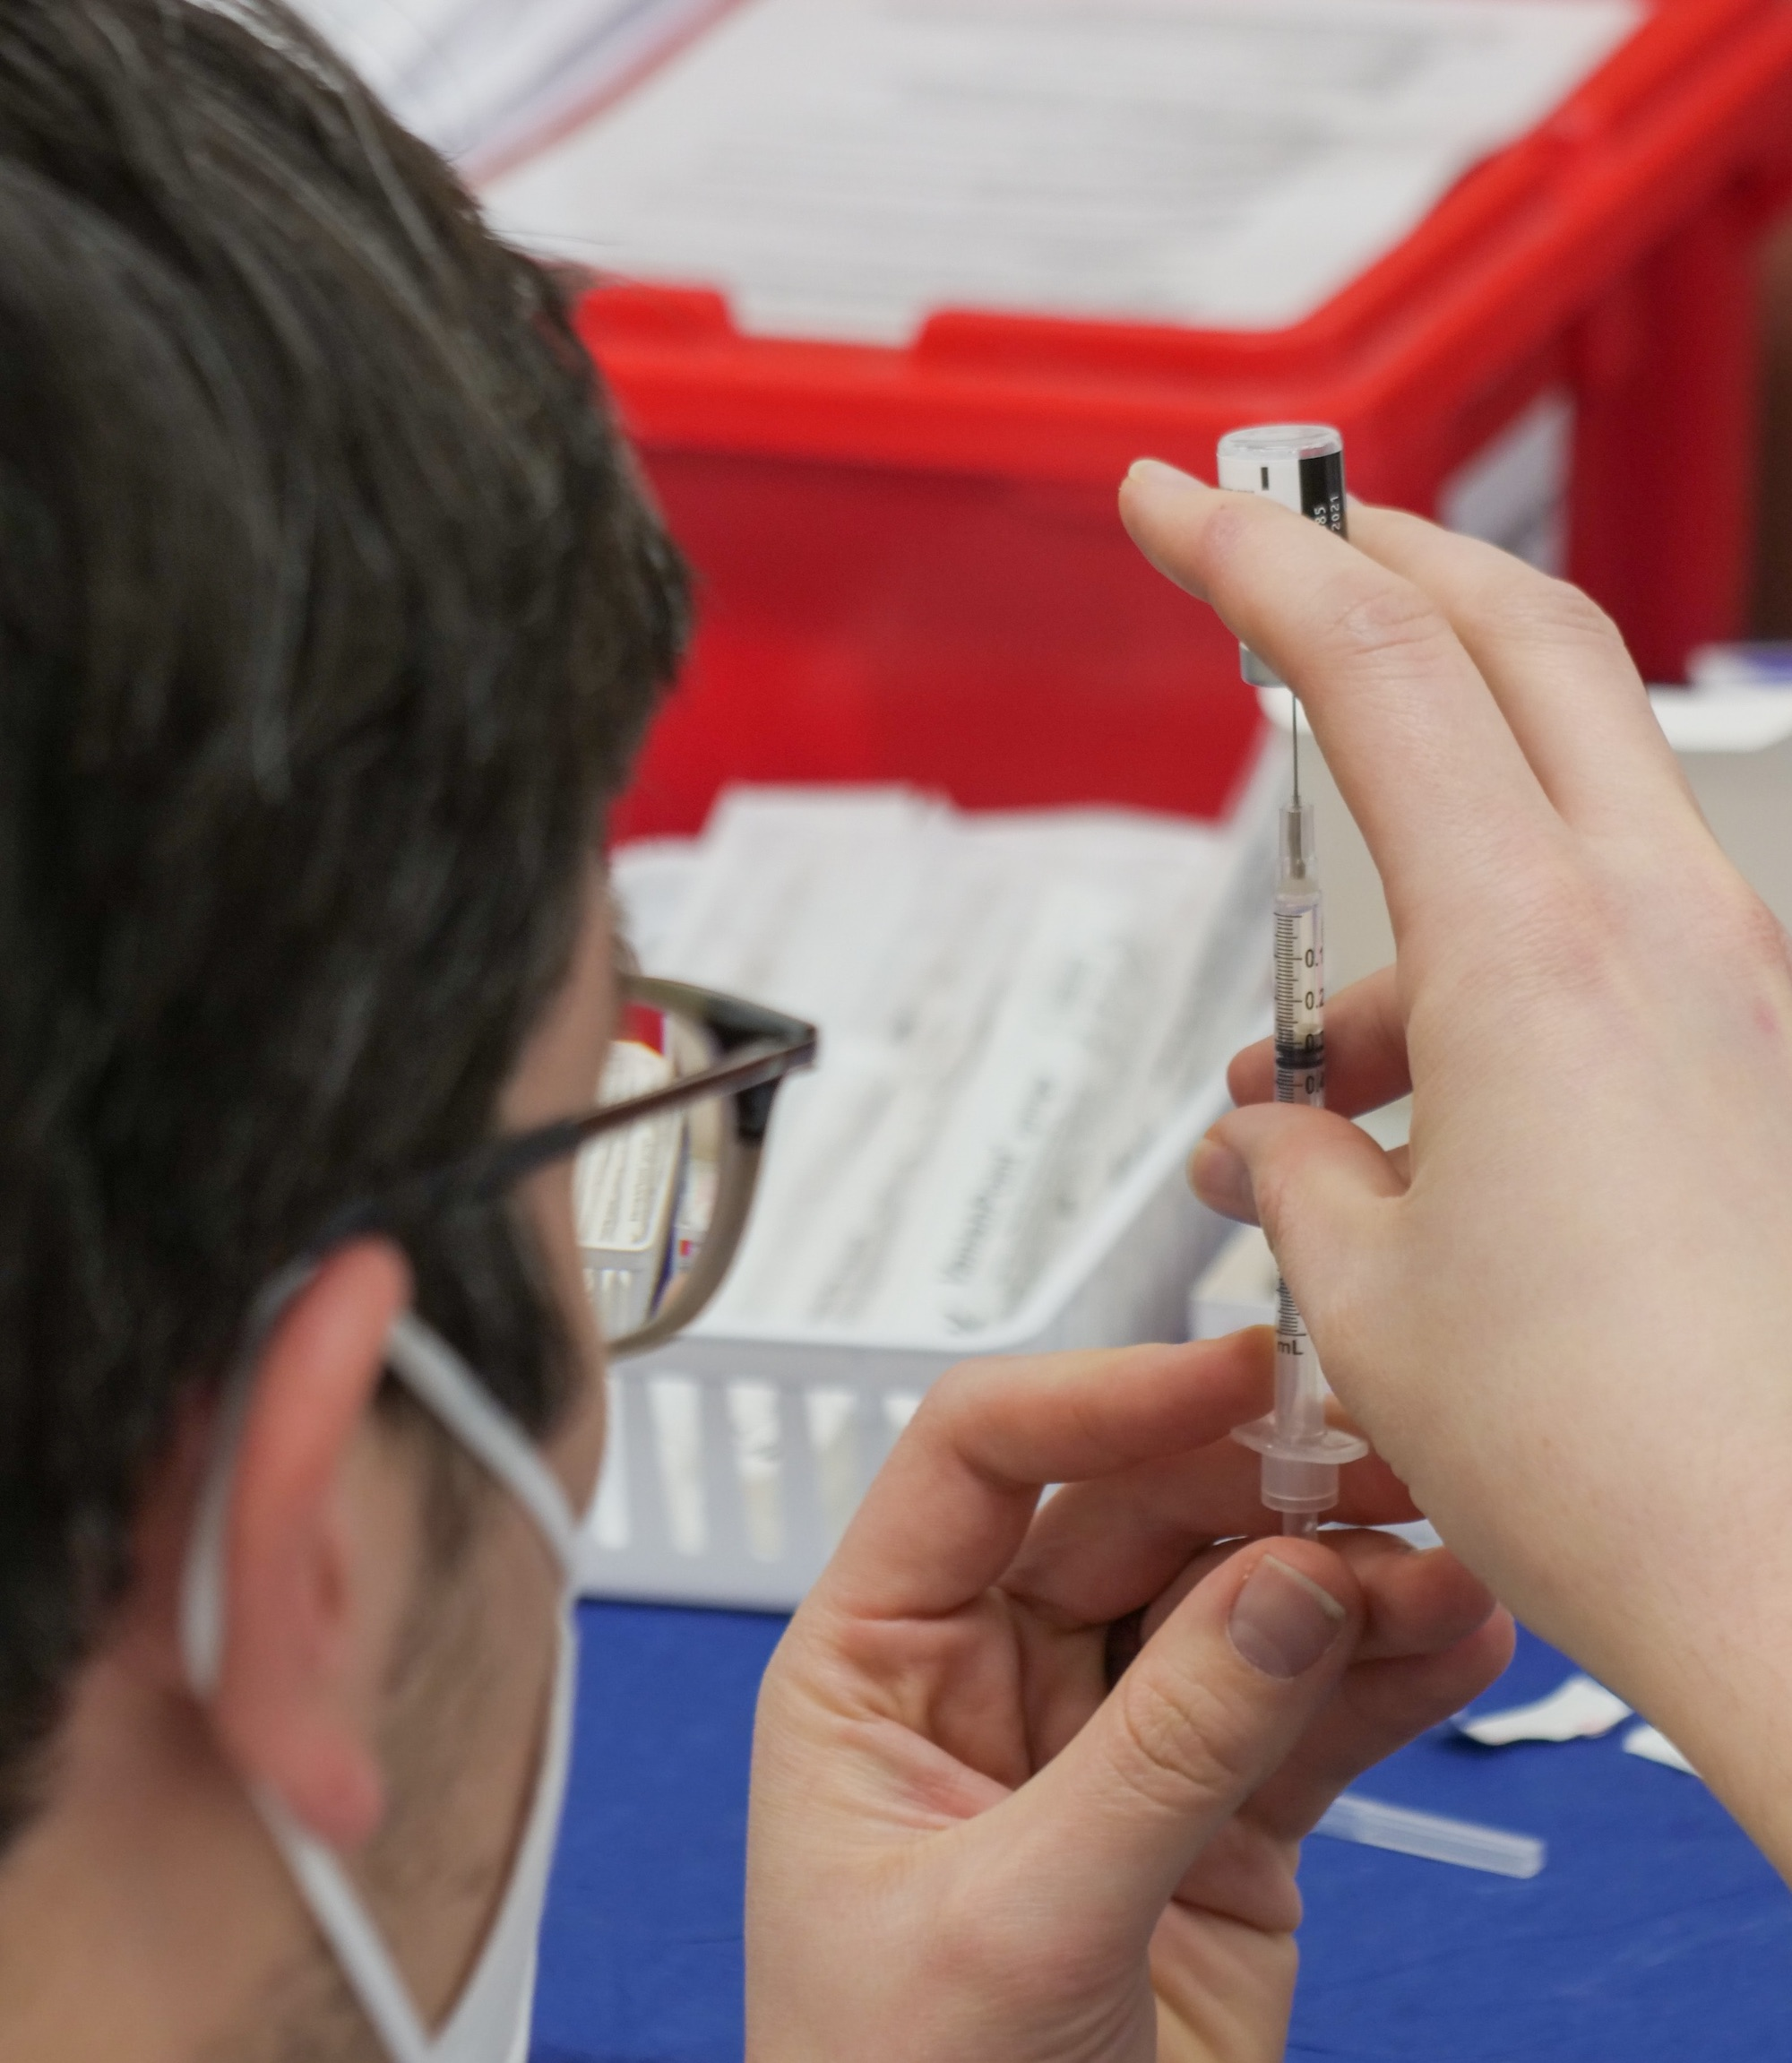 a masked individual withdraws a vaccine from a vial